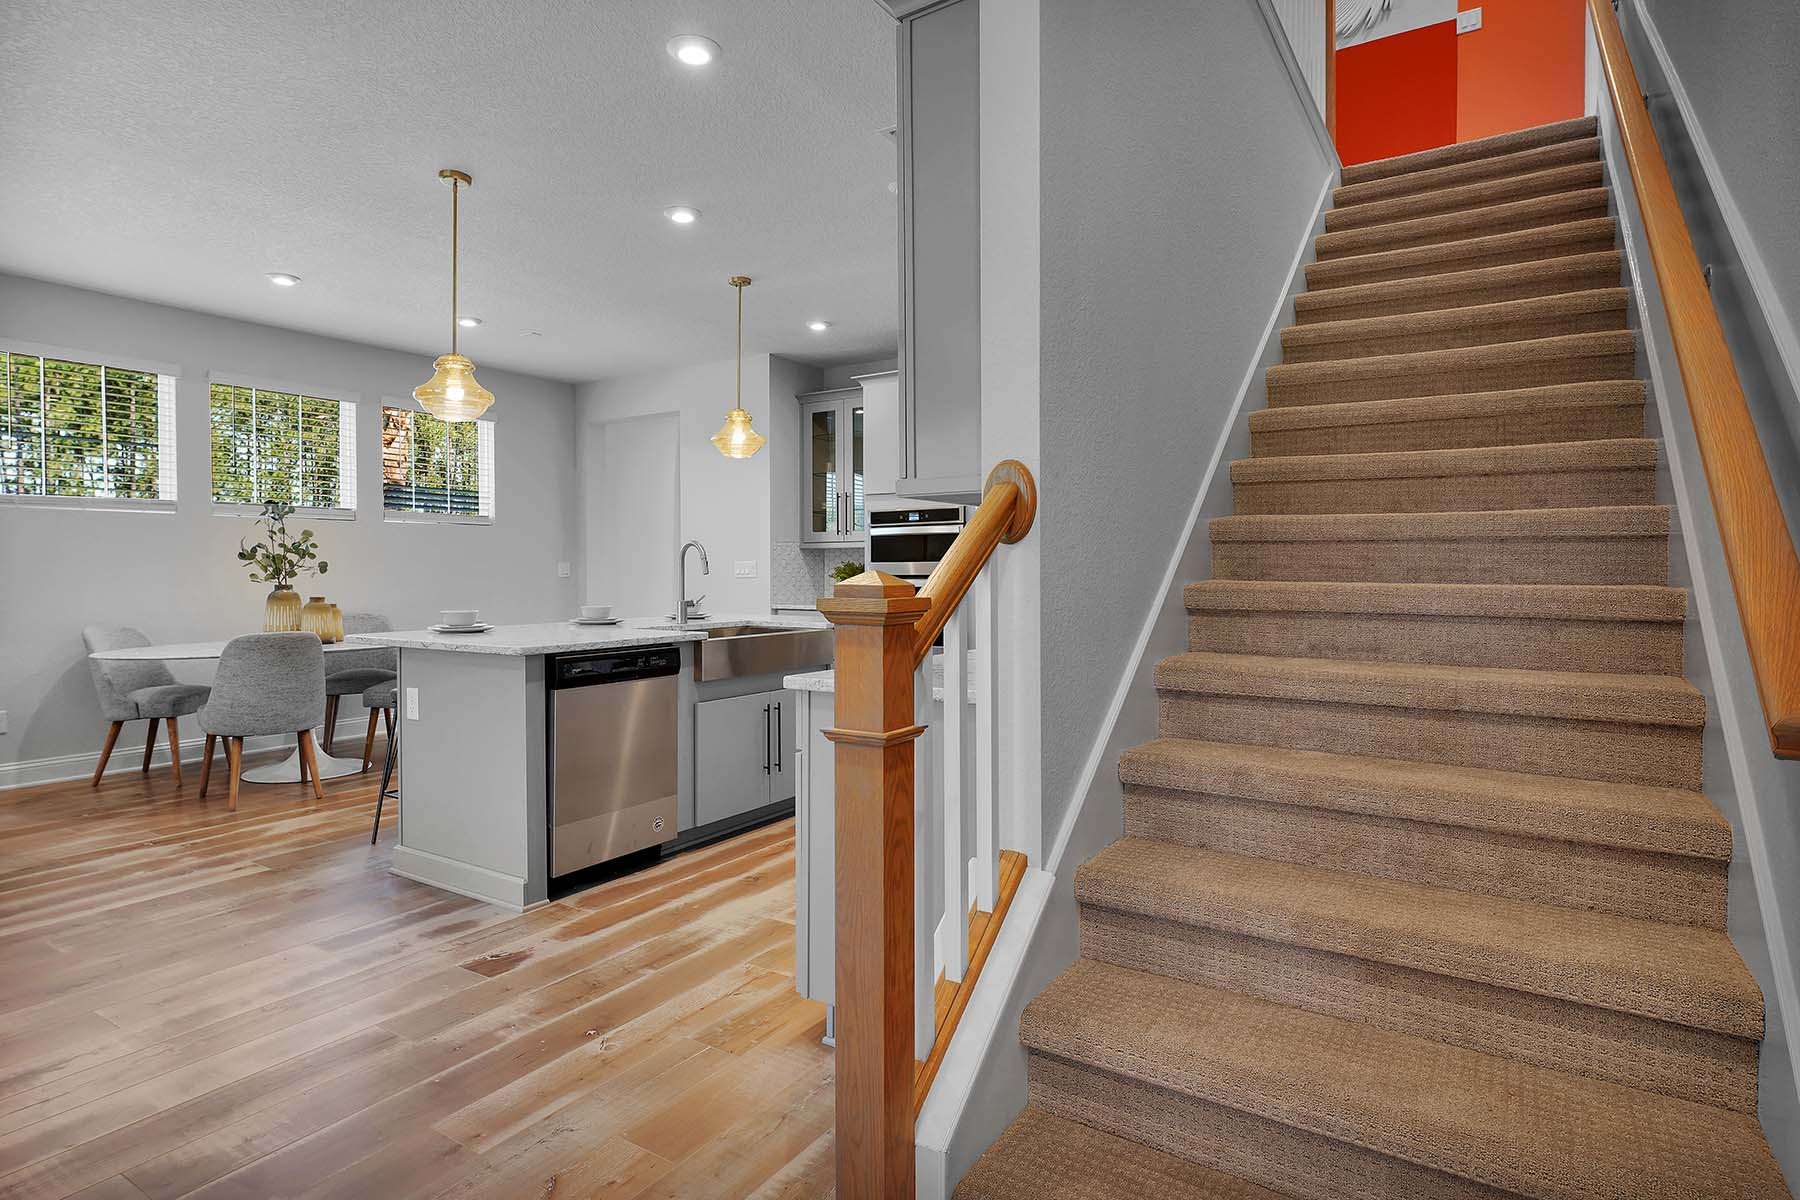 Waverly Plan Stairs at Pablo Cove in Jacksonville Florida by Mattamy Homes